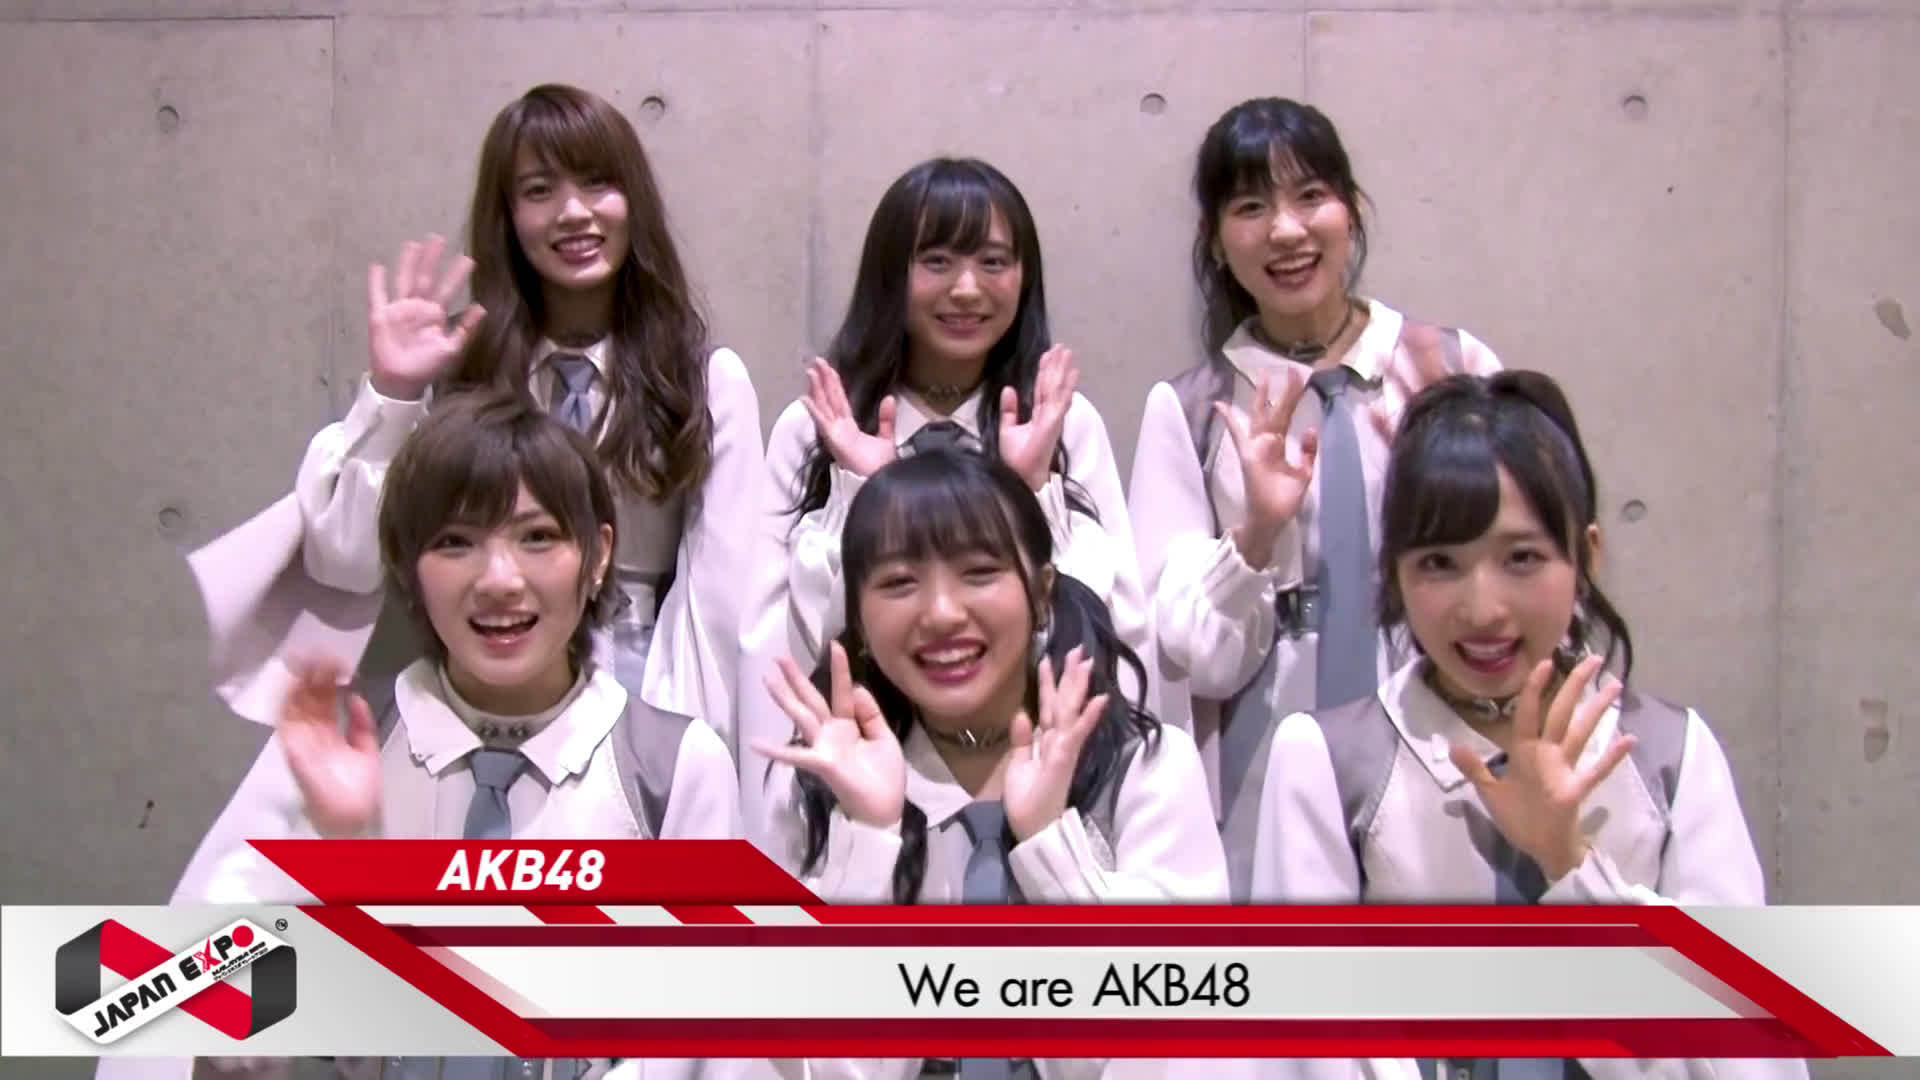 Shoutout from AKB48 Japan Expo Malaysia 2019